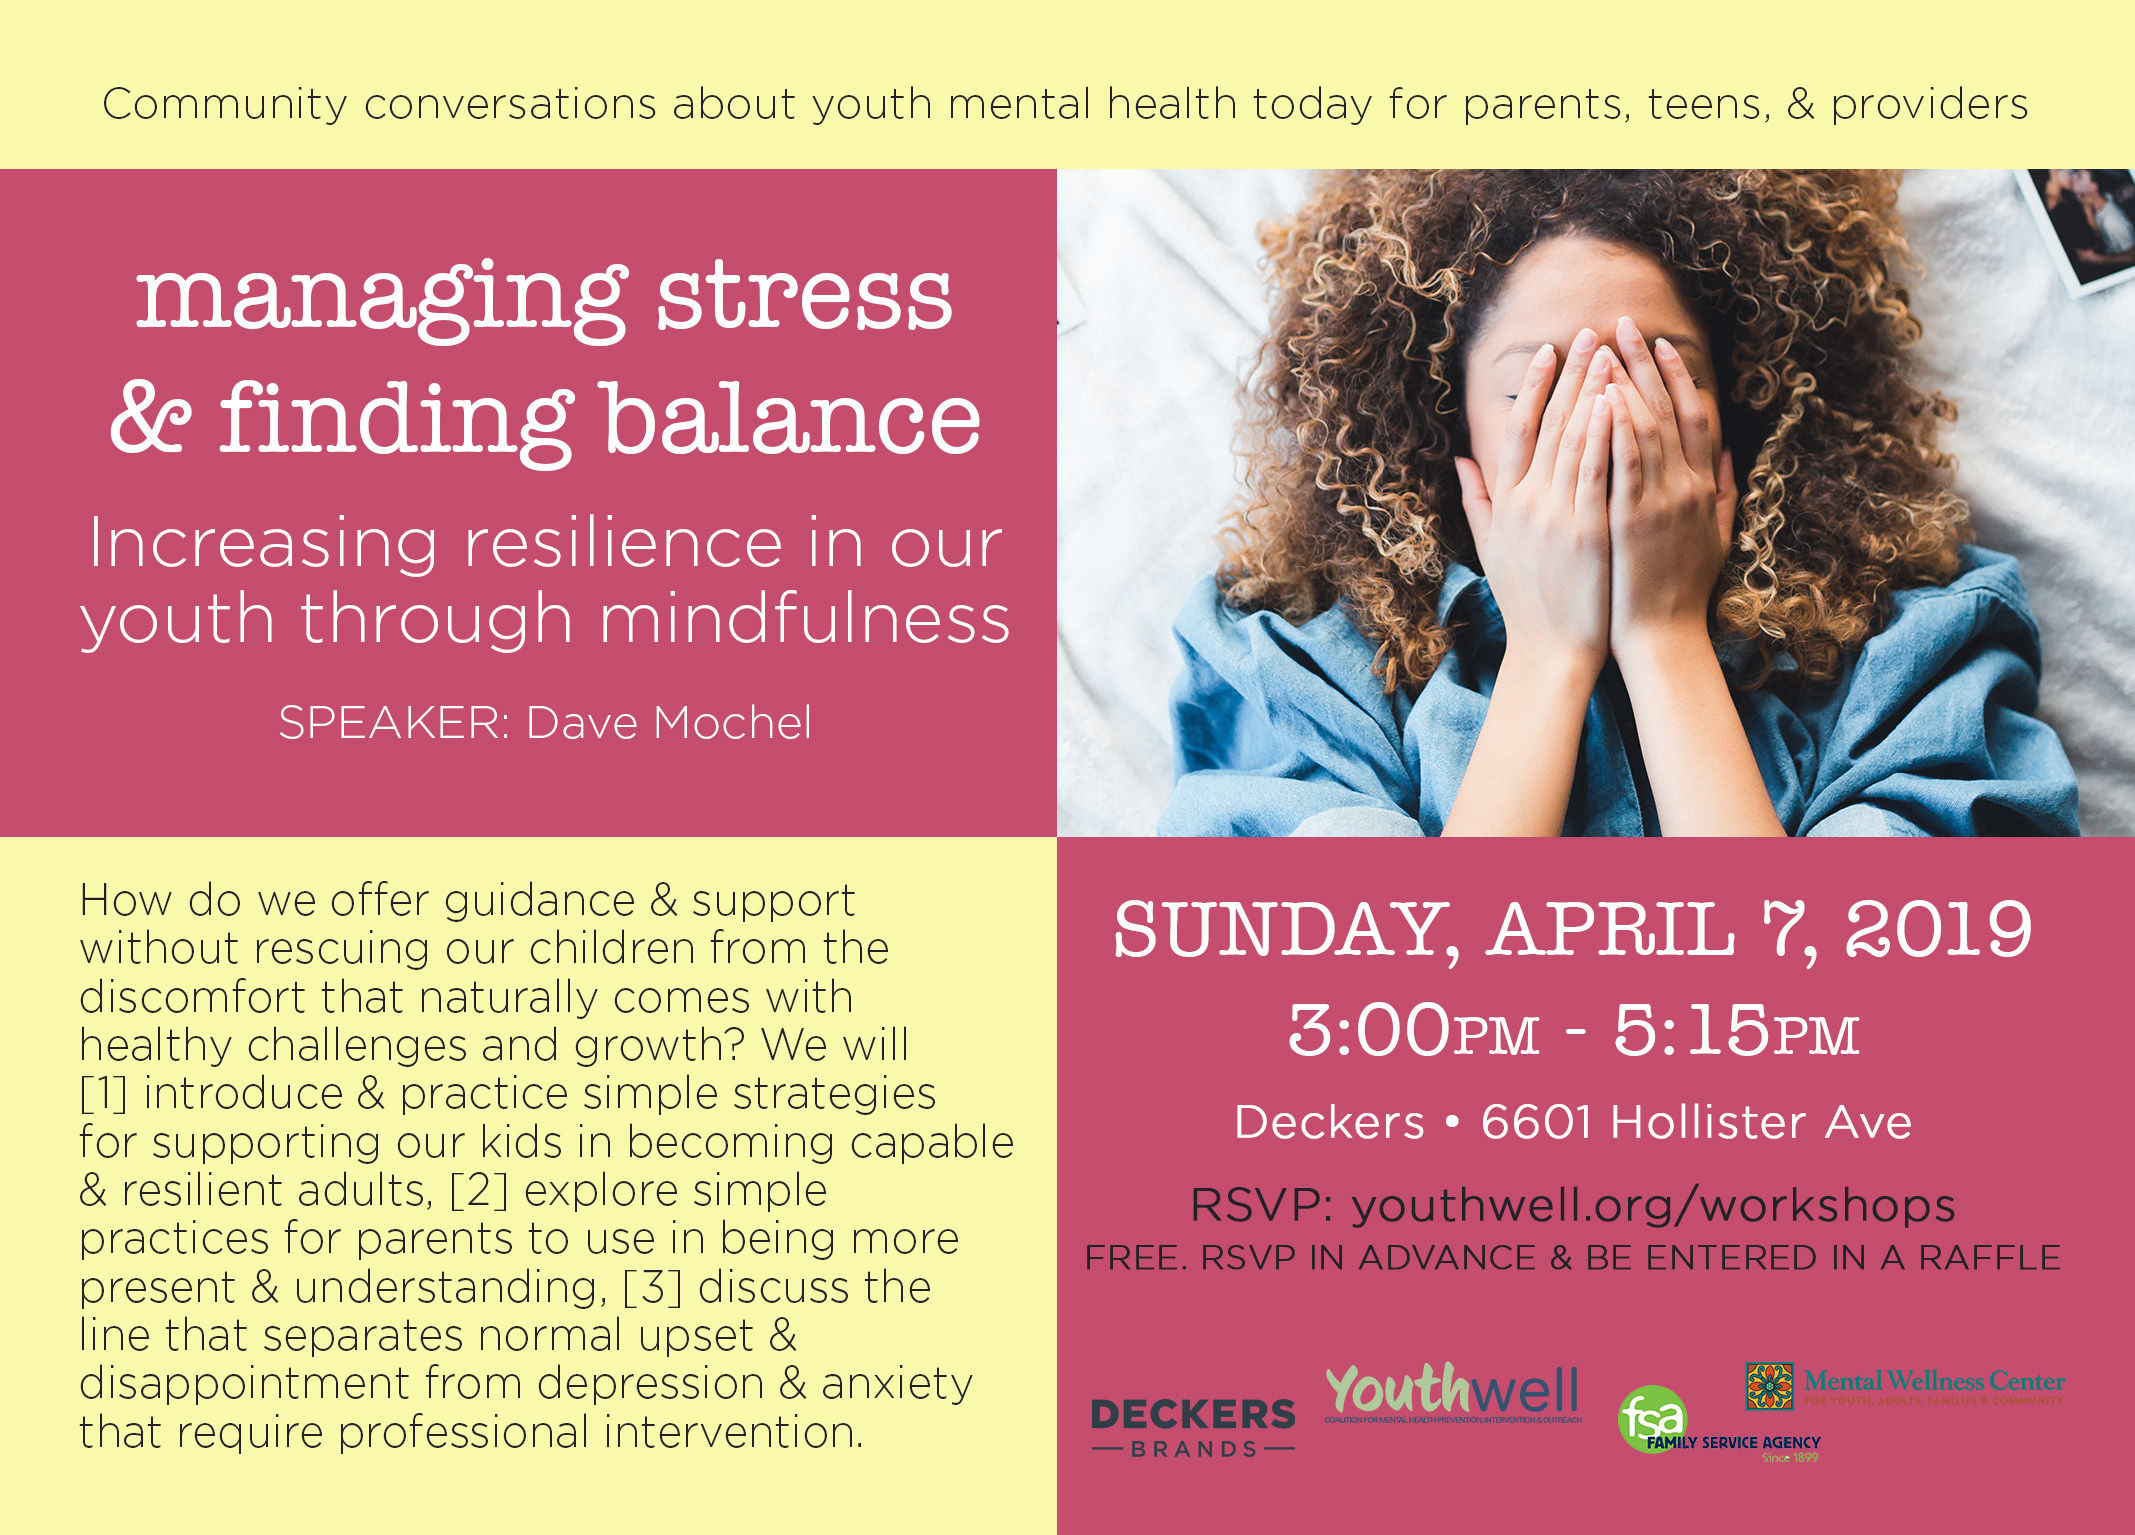 managing stress & finding balance increasing resilience in our youth through mindfulness & self-care DATE: Sunday, April 7, 2019 TIME: 3:00PM - 5:15PM LOCATION: Deckers, 6601 Hollister Avenue (corner of Hollister & Los Carneros) RSVP: You can show up to this FREE workshop without registering but it helps us to know how many are coming so if you rsvp on eventbrite in advance, you will be entered into a RAFFLE! DESCRIPTION: How do we offer guidance & support without rescuing our children from the discomfort that naturally comes with healthy challenges and growth? We will [1] introduce & practice simple strategies for supporting our kids in becoming capable & resilient adults, [2] explore simple practices for parents to use in being more present & understanding, [3] discuss the line that separates normal upset & disappointment from depression & anxiety that require professional intervention. SPEAKER: For over thirty years, Dave Mochel has been focused on the foundations of wellbeing, healthy communities, and leadership. Using principles drawn from modern scientific research and enduring wisdom, he has had the opportunity to work with leaders, educators, executives, parents, students, and athletes all over the world.  WHO SHOULD ATTEND?  Parents of youth ages 5-25, as well as teens, educators, and youth providers are invited. Spanish language interpretation will be provided.